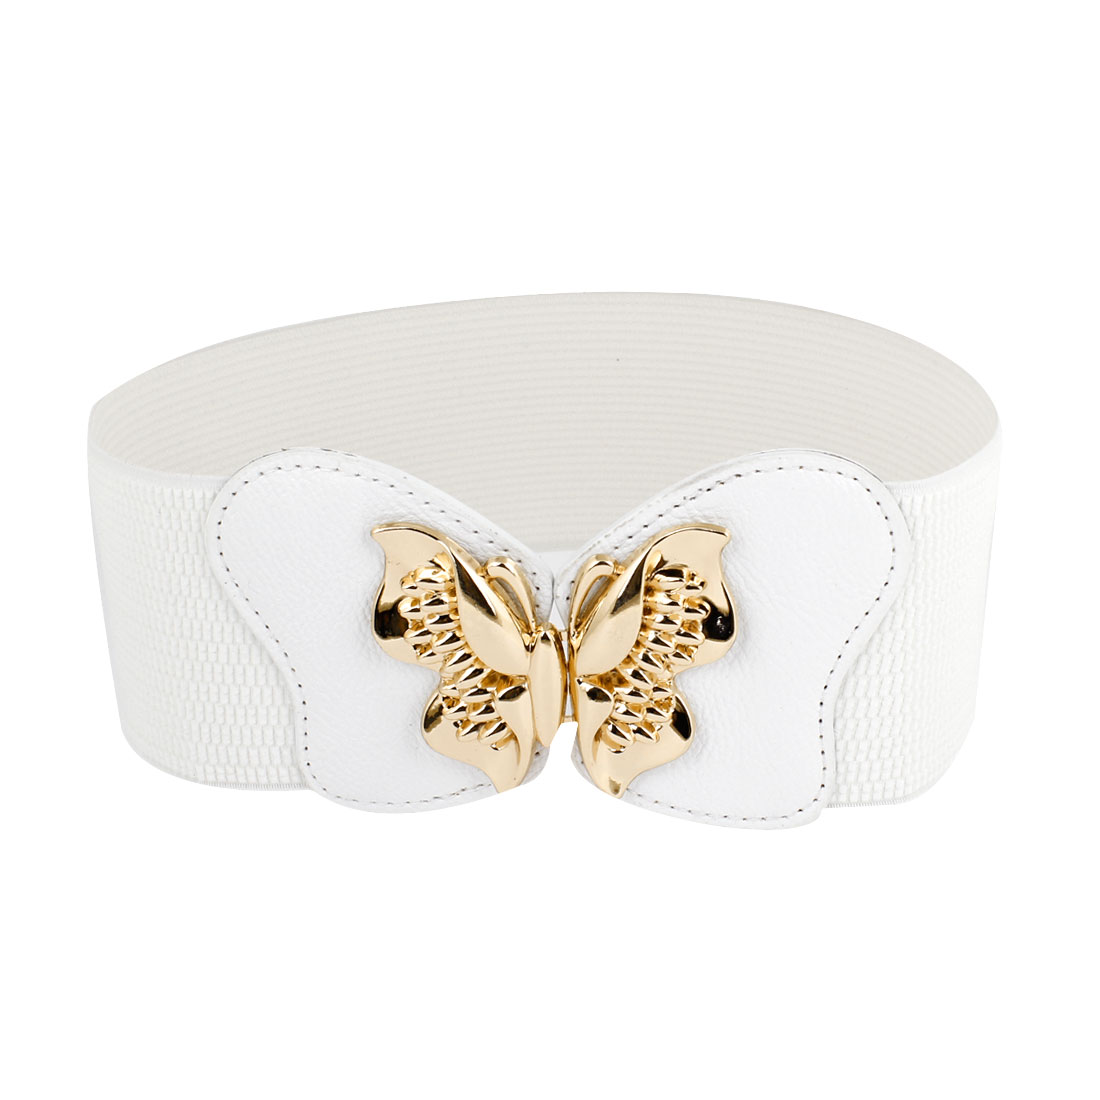 Gold Tone Butterfly Interlock Buckle Elastic Cinch Belt White for Women